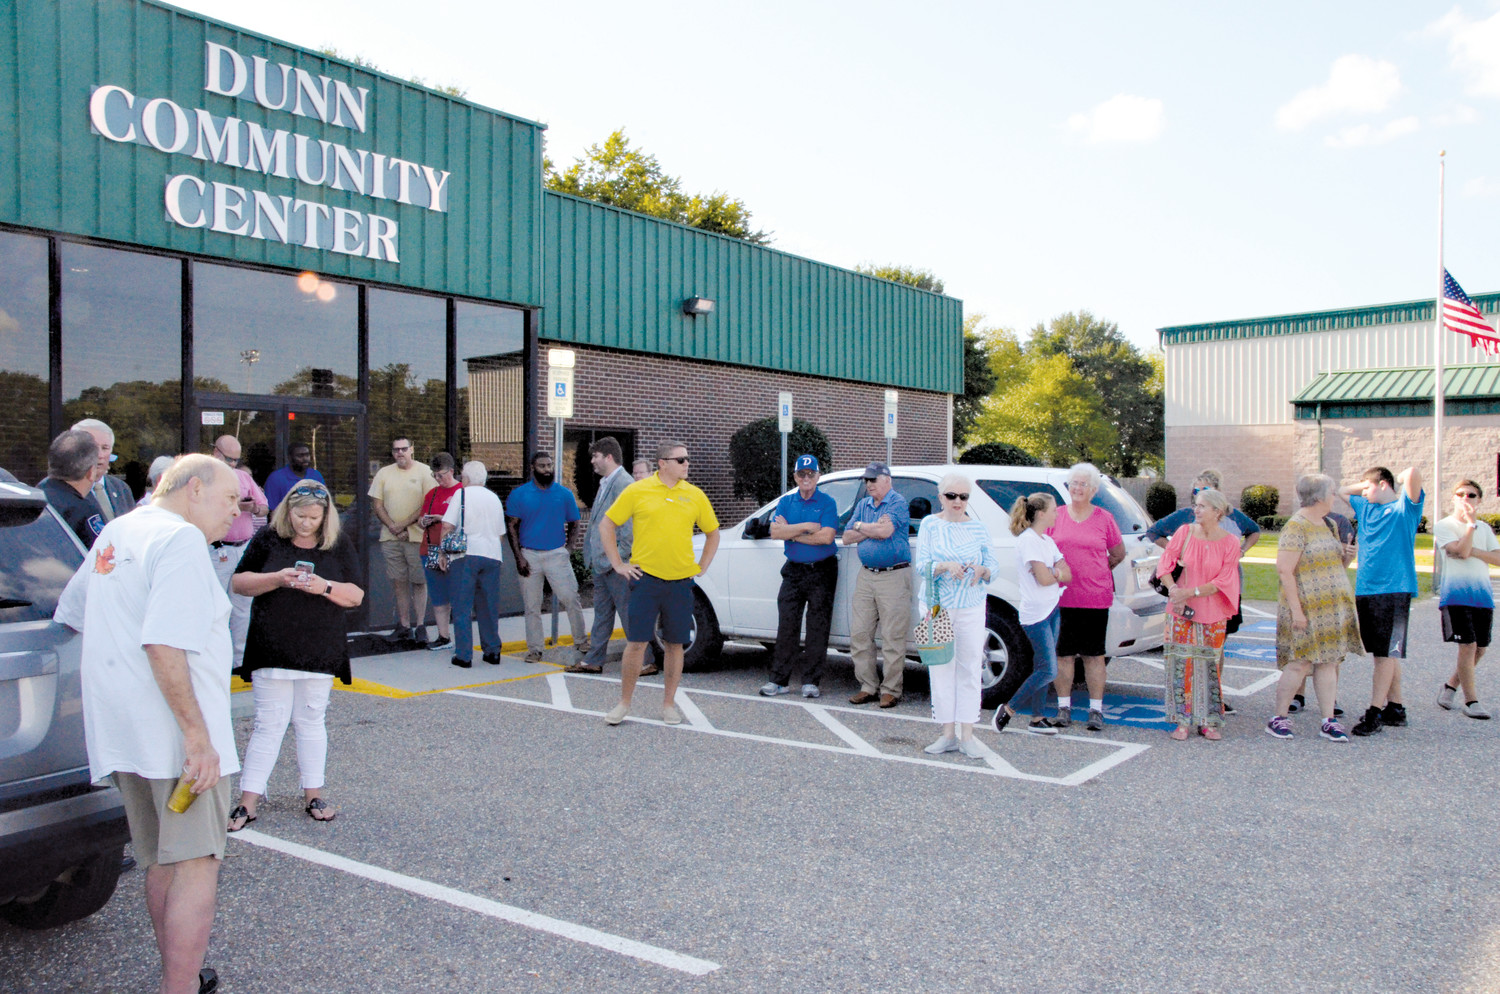 More than 50 people — friends, family, city officials and others — turned out to the Dunn Community Center on Wednesday evening to celebrate the accomplishments of the Dunn Angels. In early August, Dunn won its second 10U softball world championship in as many years.